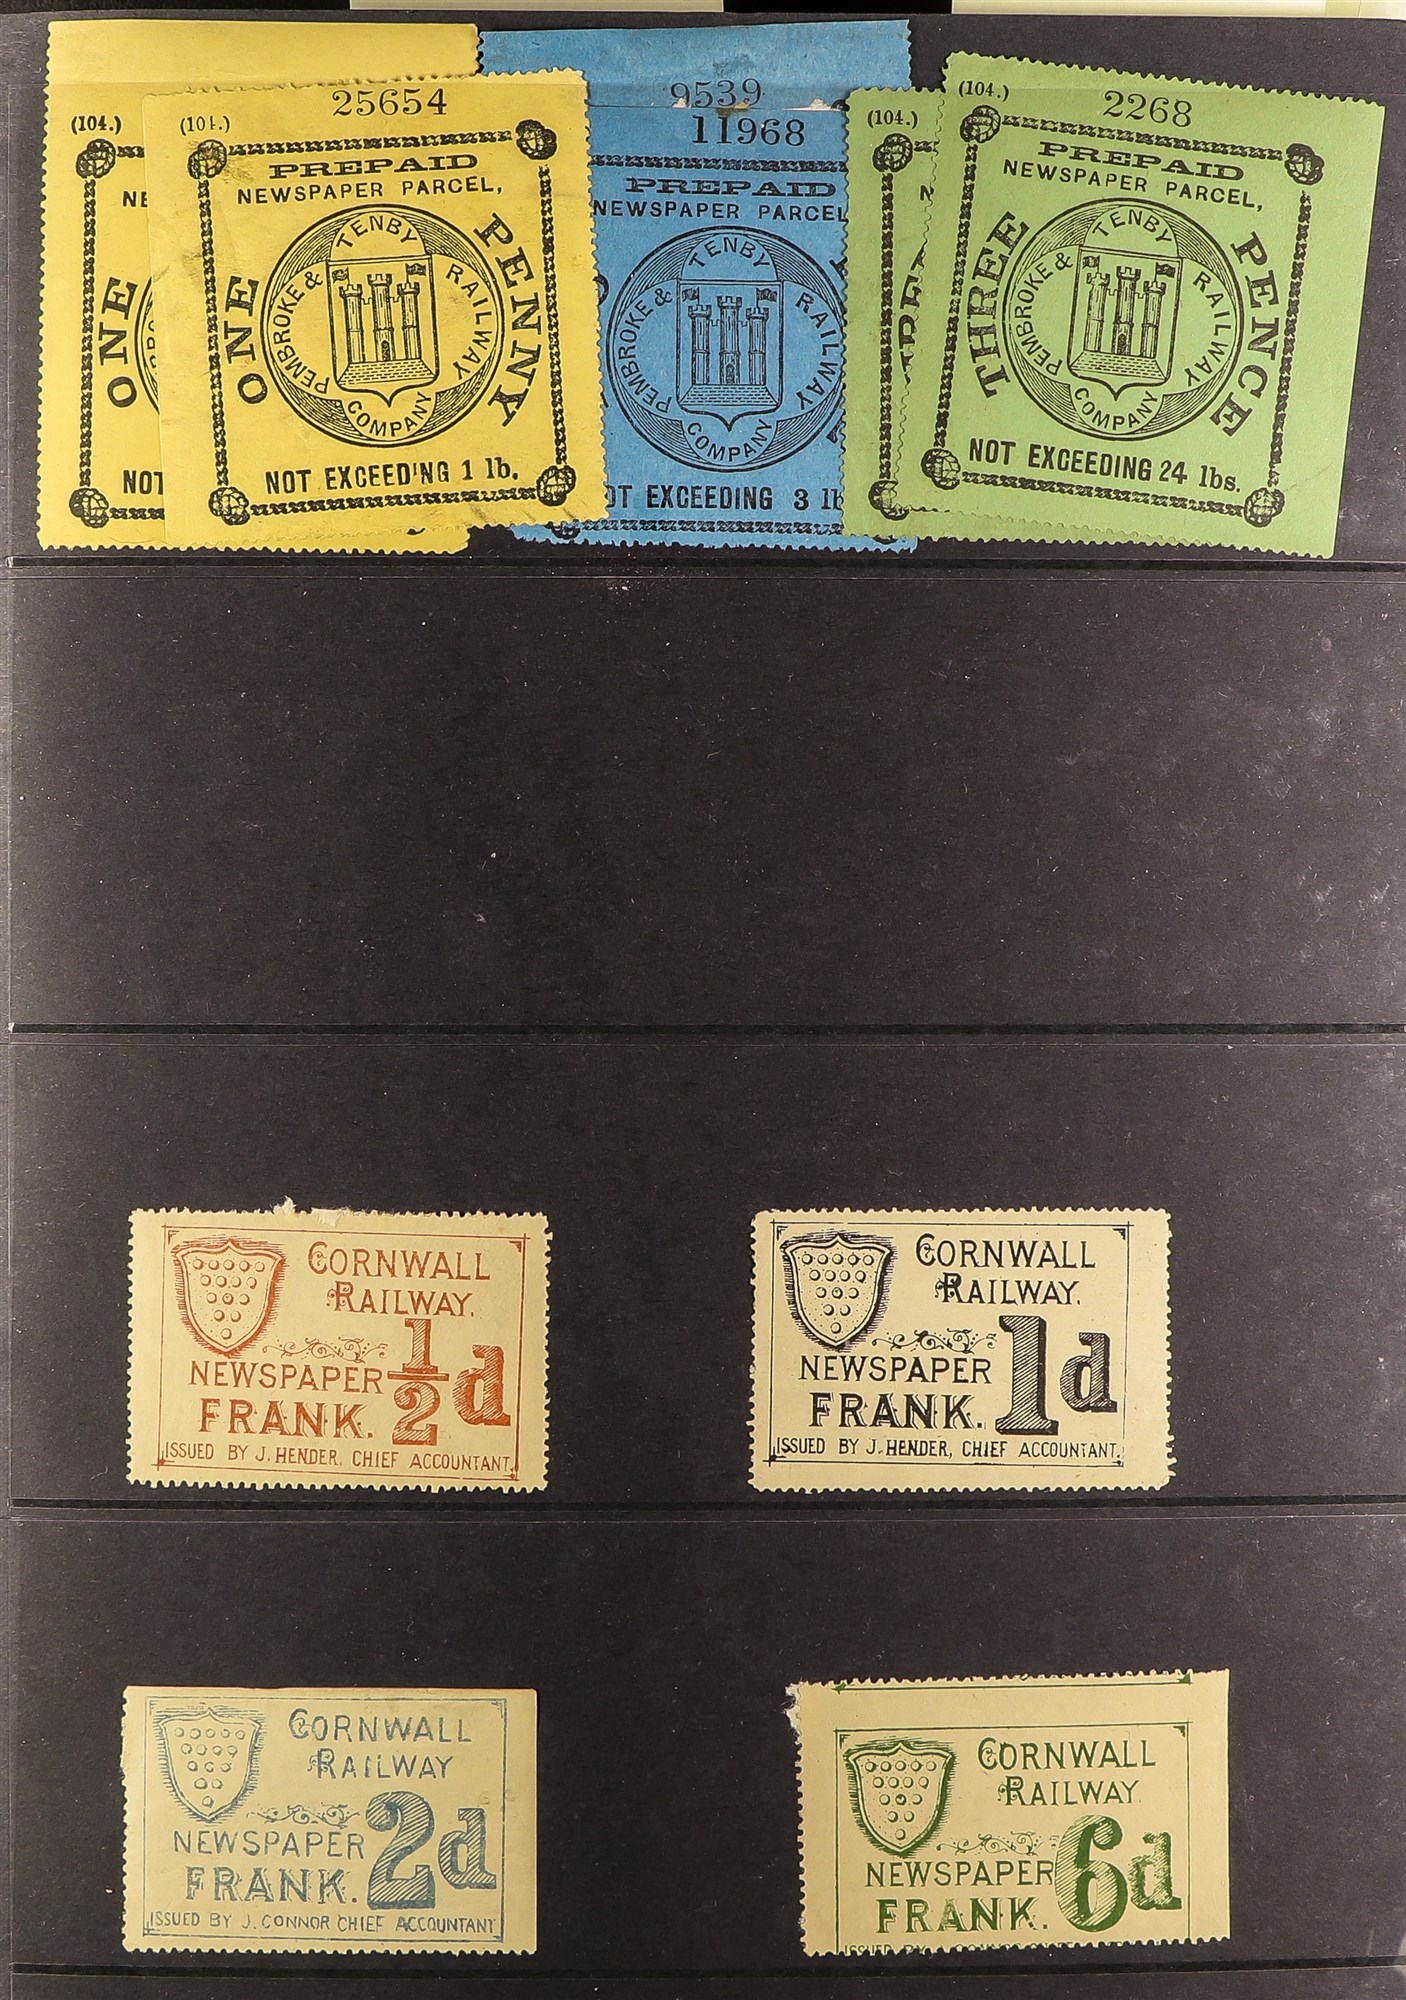 GREAT BRITAIN RAILWAY LETTER AND NEWSPAPER STAMPS 1890's-1940's COLLECTION in two albums, mint and - Image 14 of 24